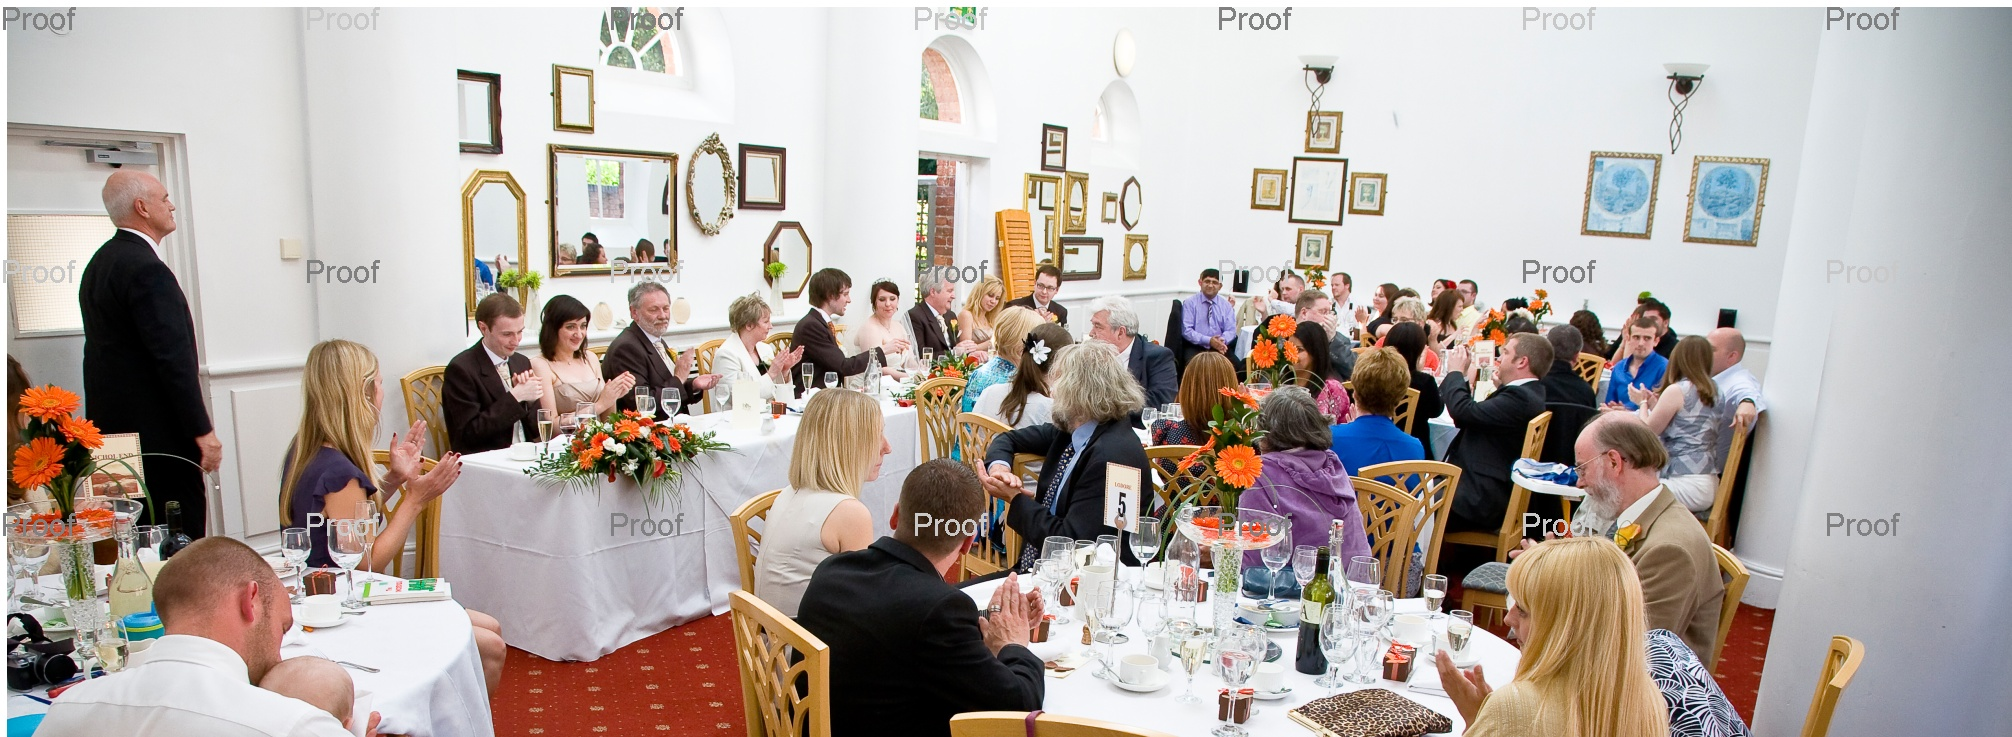 pages 58-59 wedding storybook album, picture of Chancellors Hotel function room during wedding breakfast